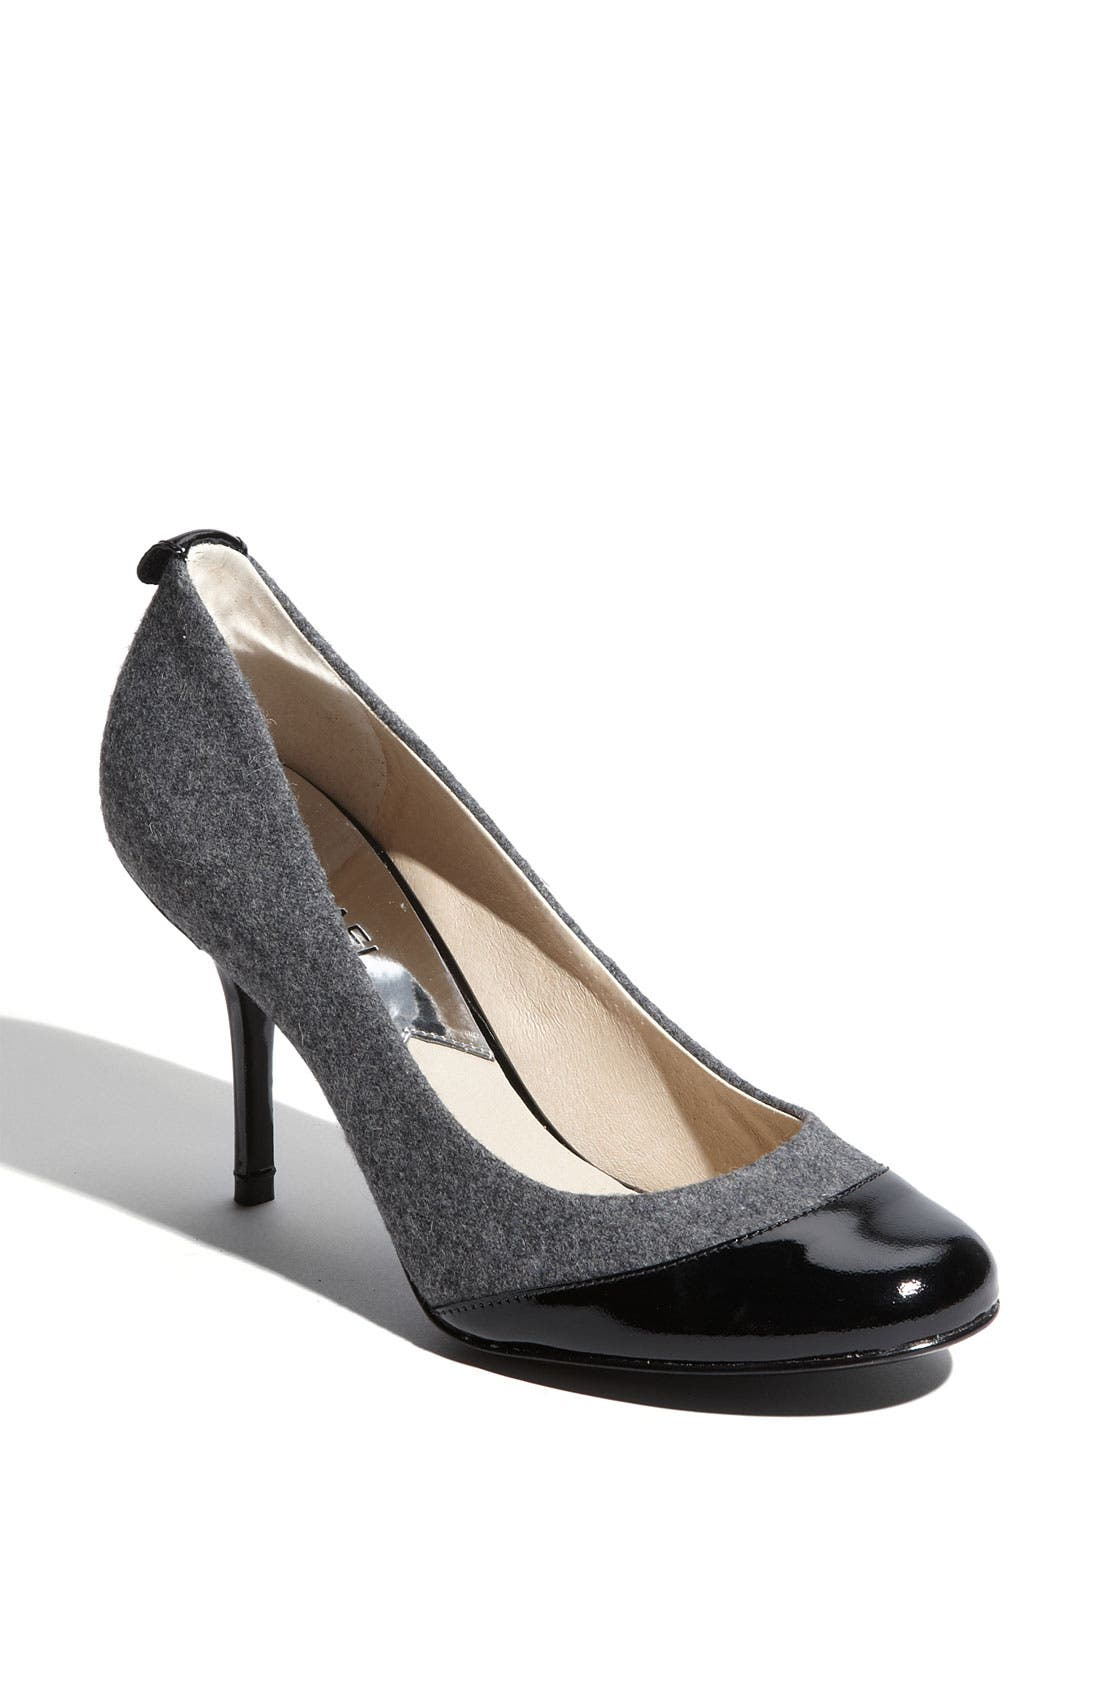 Alternate Image 1 Selected - MICHAEL Michael Kors 'Pressley' Pump